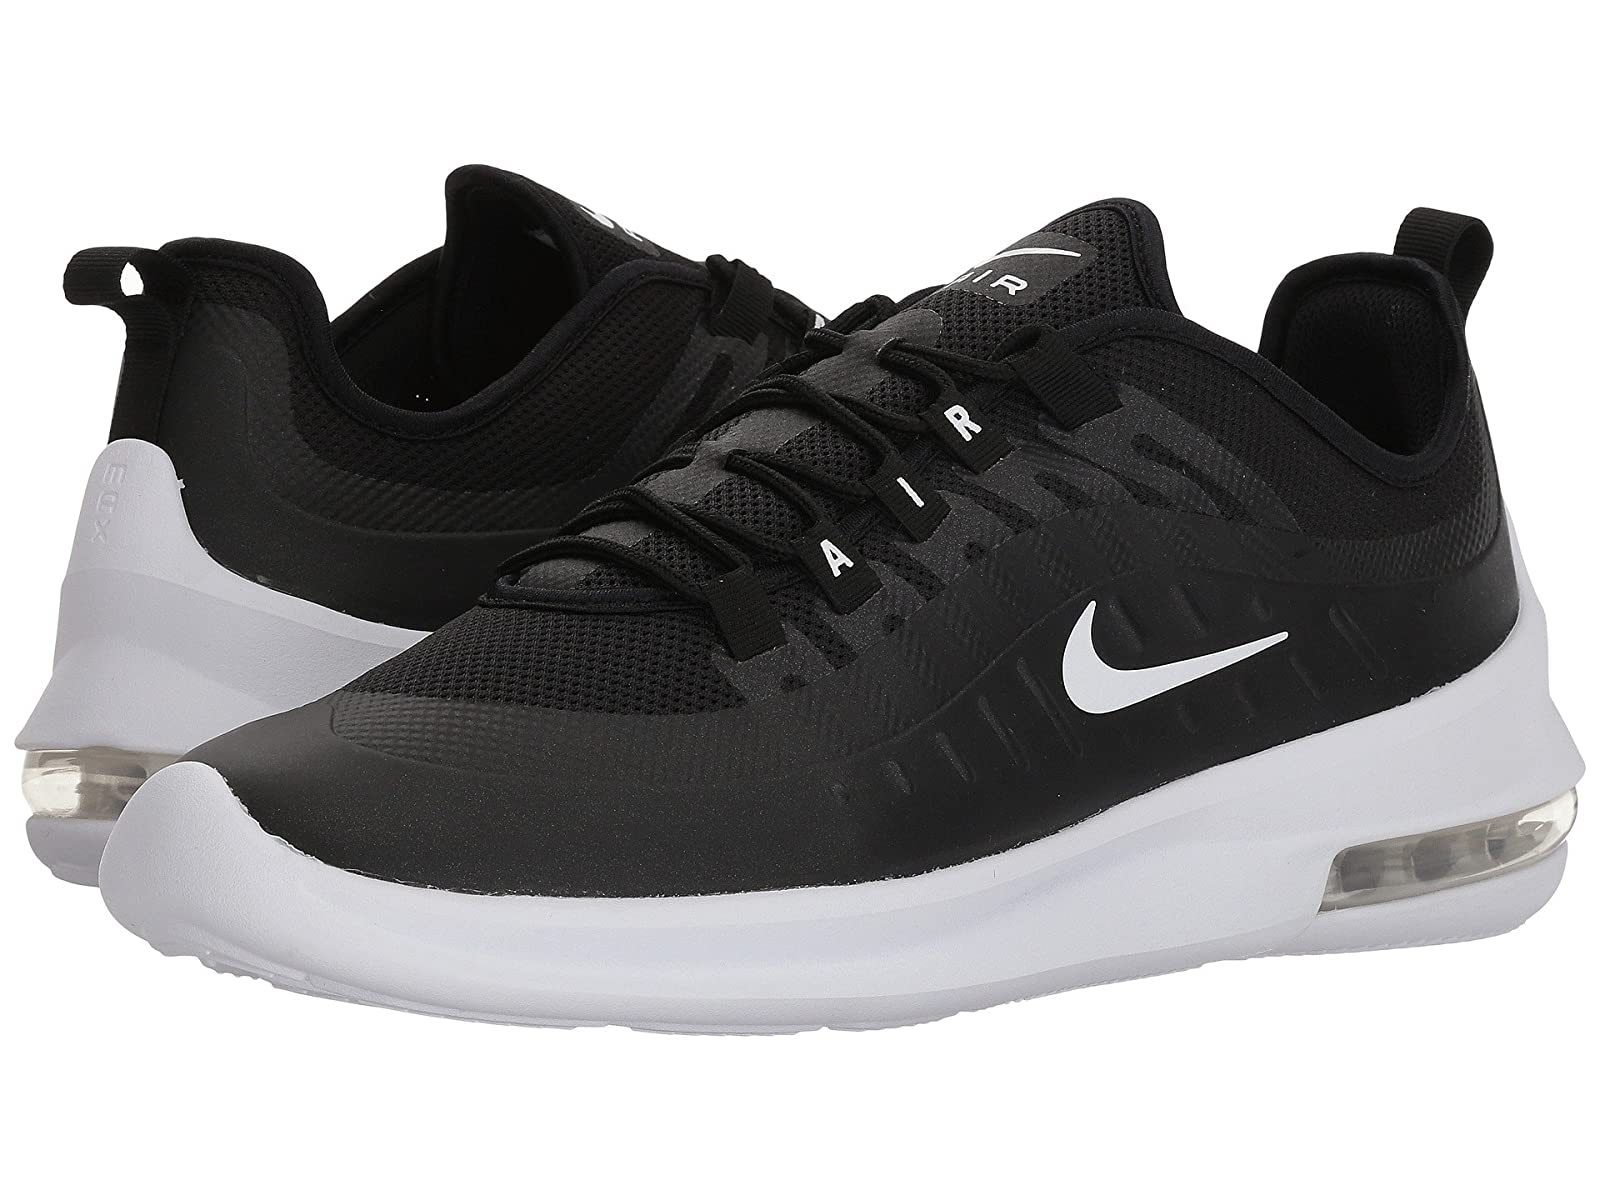 82fccf752a Man's Woman's:Nike Air Max Axis:New Max 2018 Product Axis:New ...